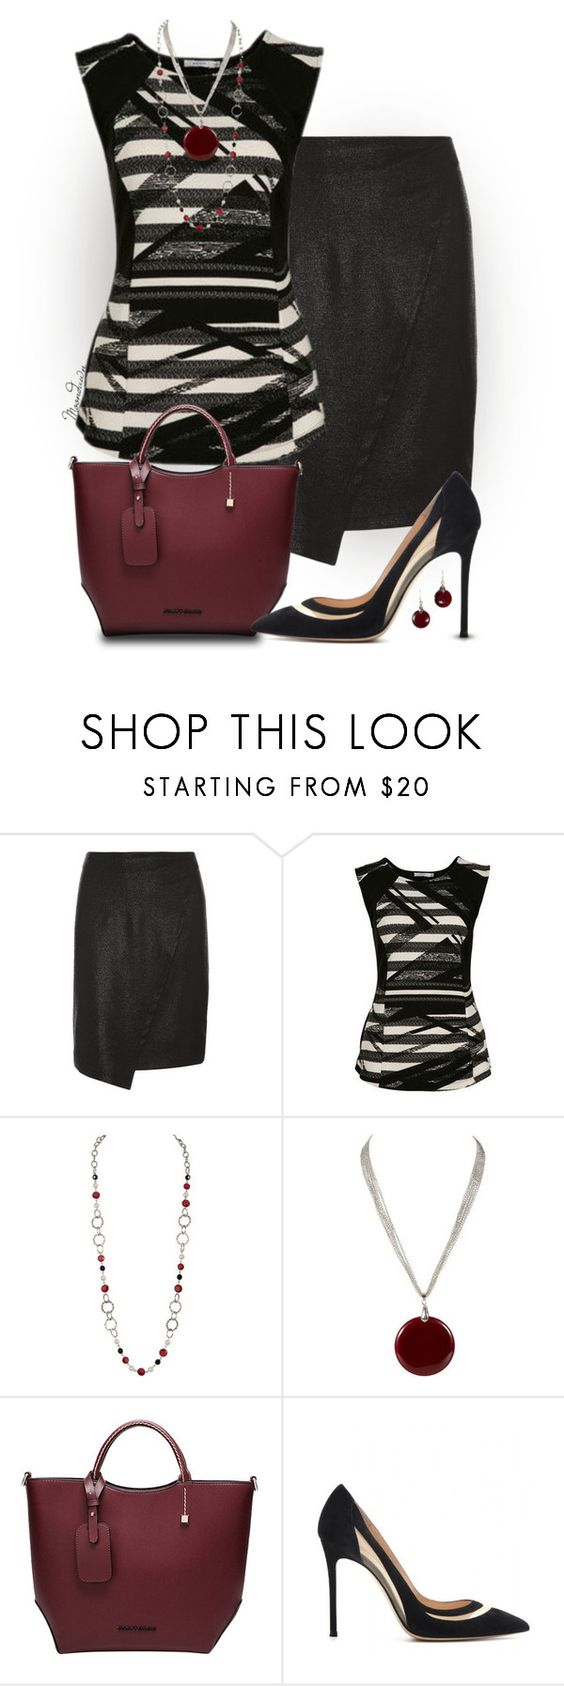 """""""#153"""" by moondawn ❤ liked on Polyvore featuring Dorothy Perkins, Gianvito Rossi, white, black, red and Silver"""